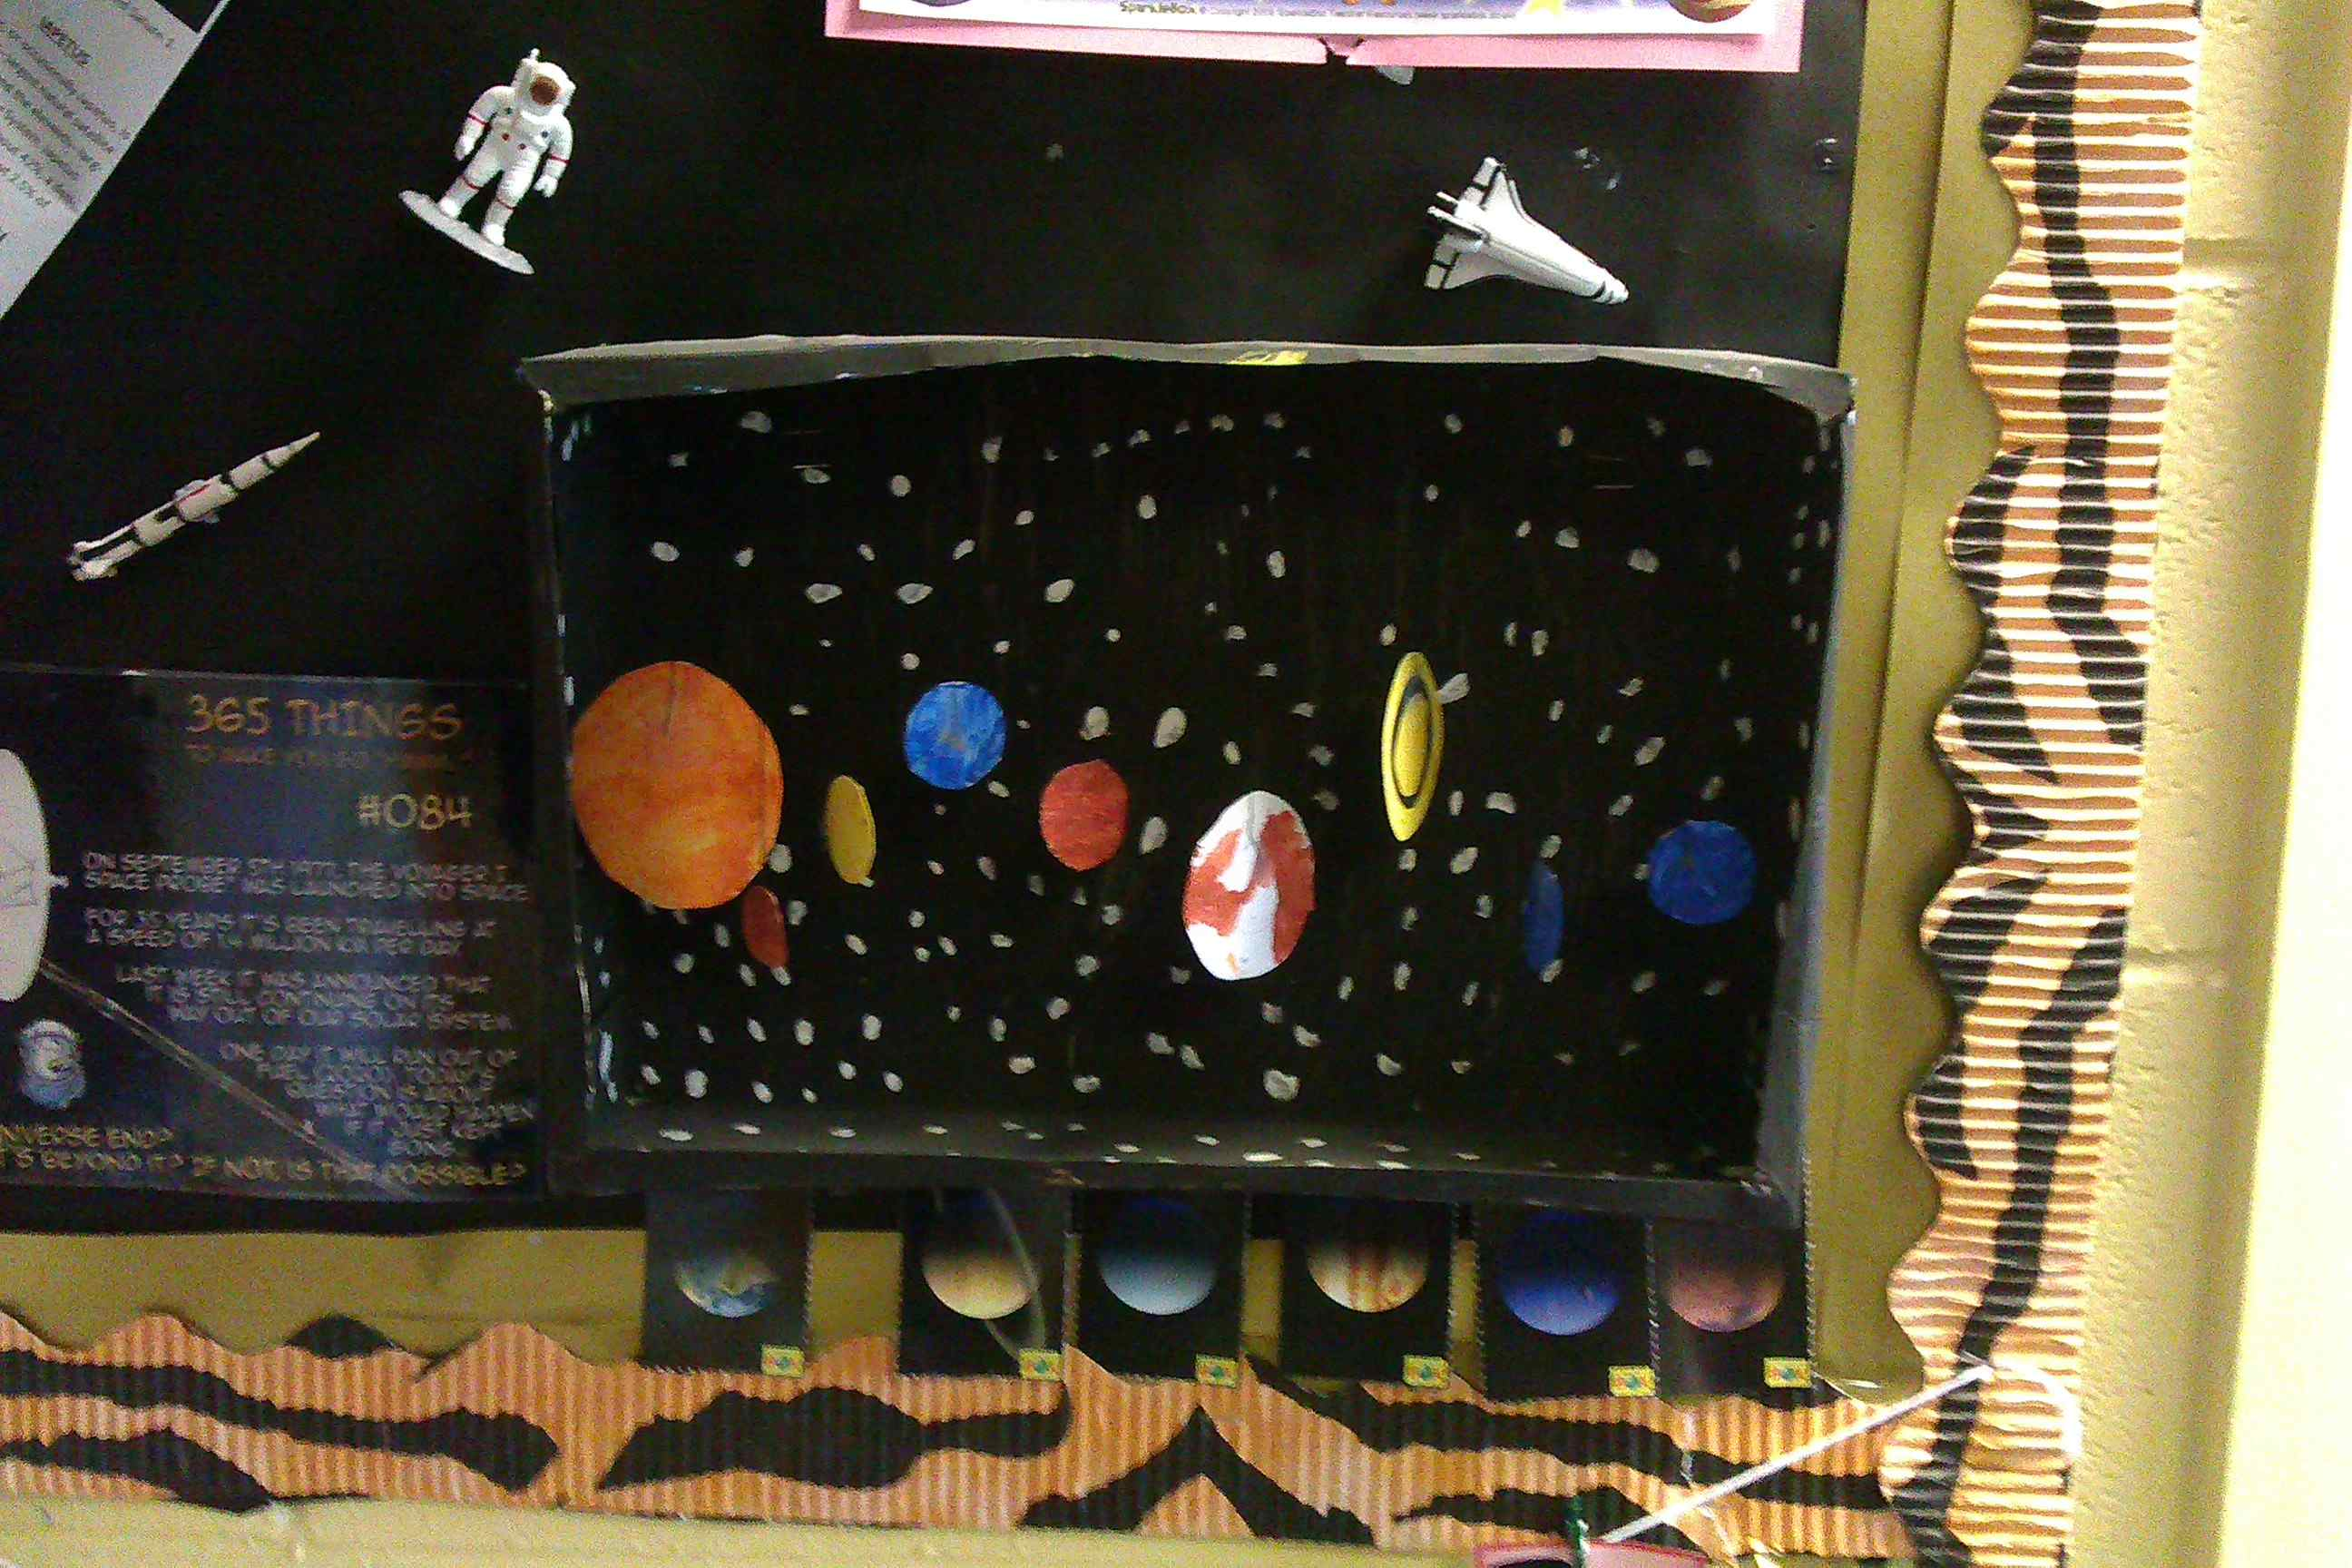 Solar System Model Shoe Box Float - Pics about space